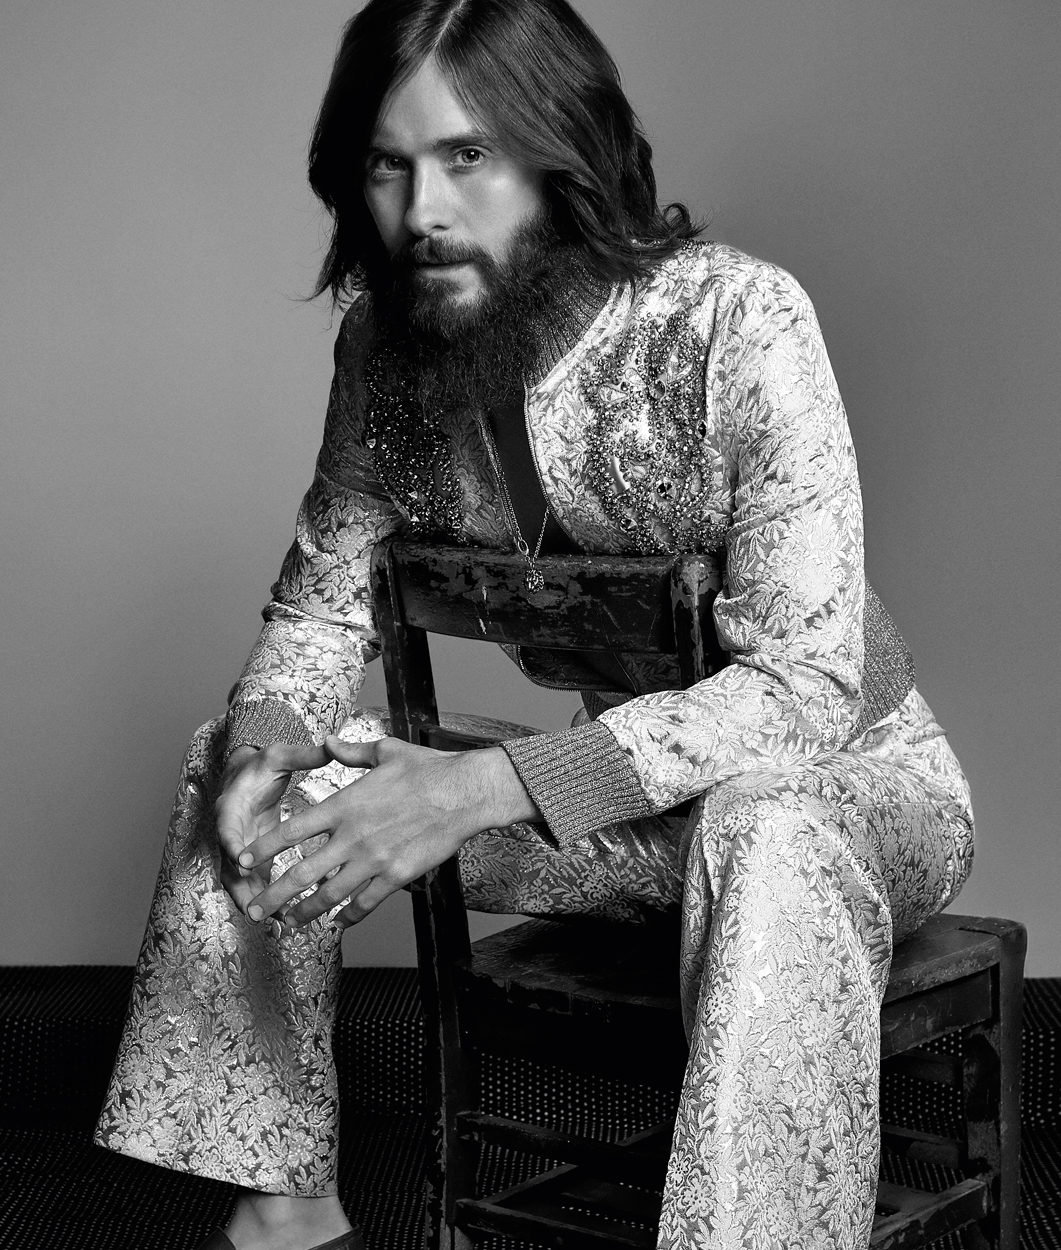 Celebrity Photographer Michael Schwartz: Jared Leto for Icon Magazine cover in Gucci